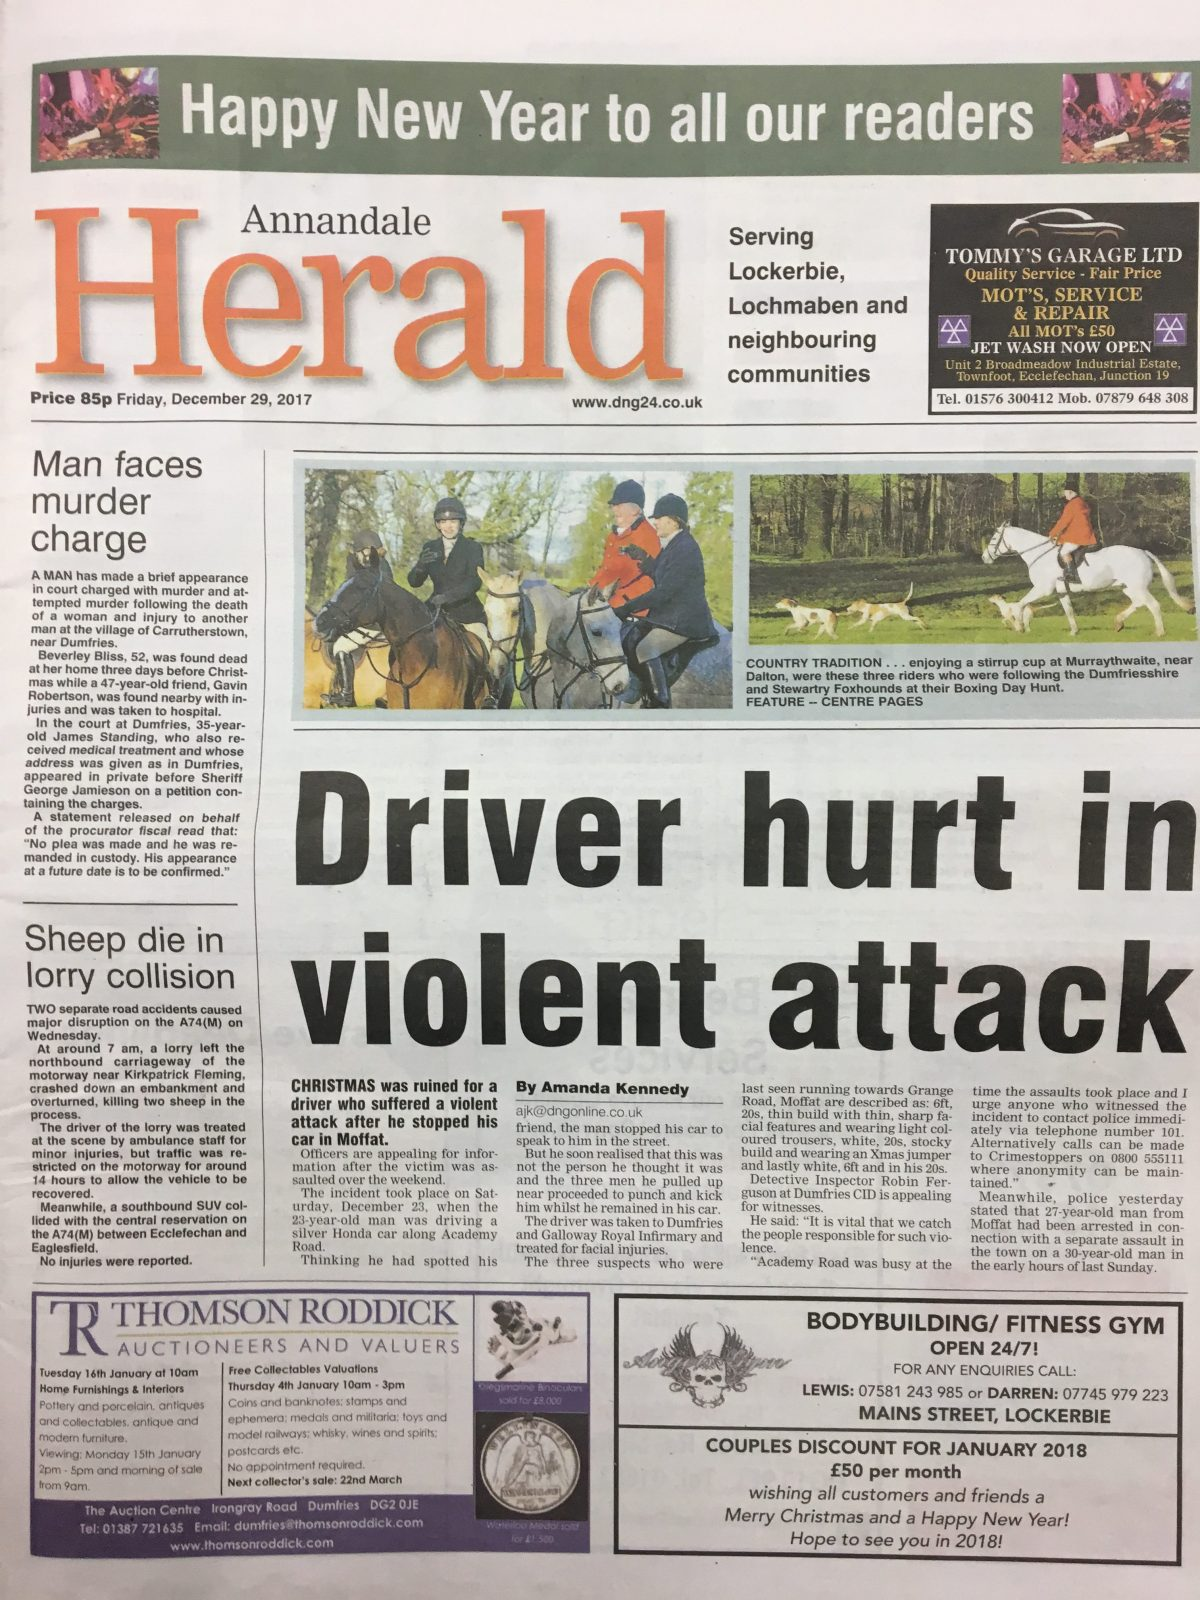 Annandale Herald 20171229